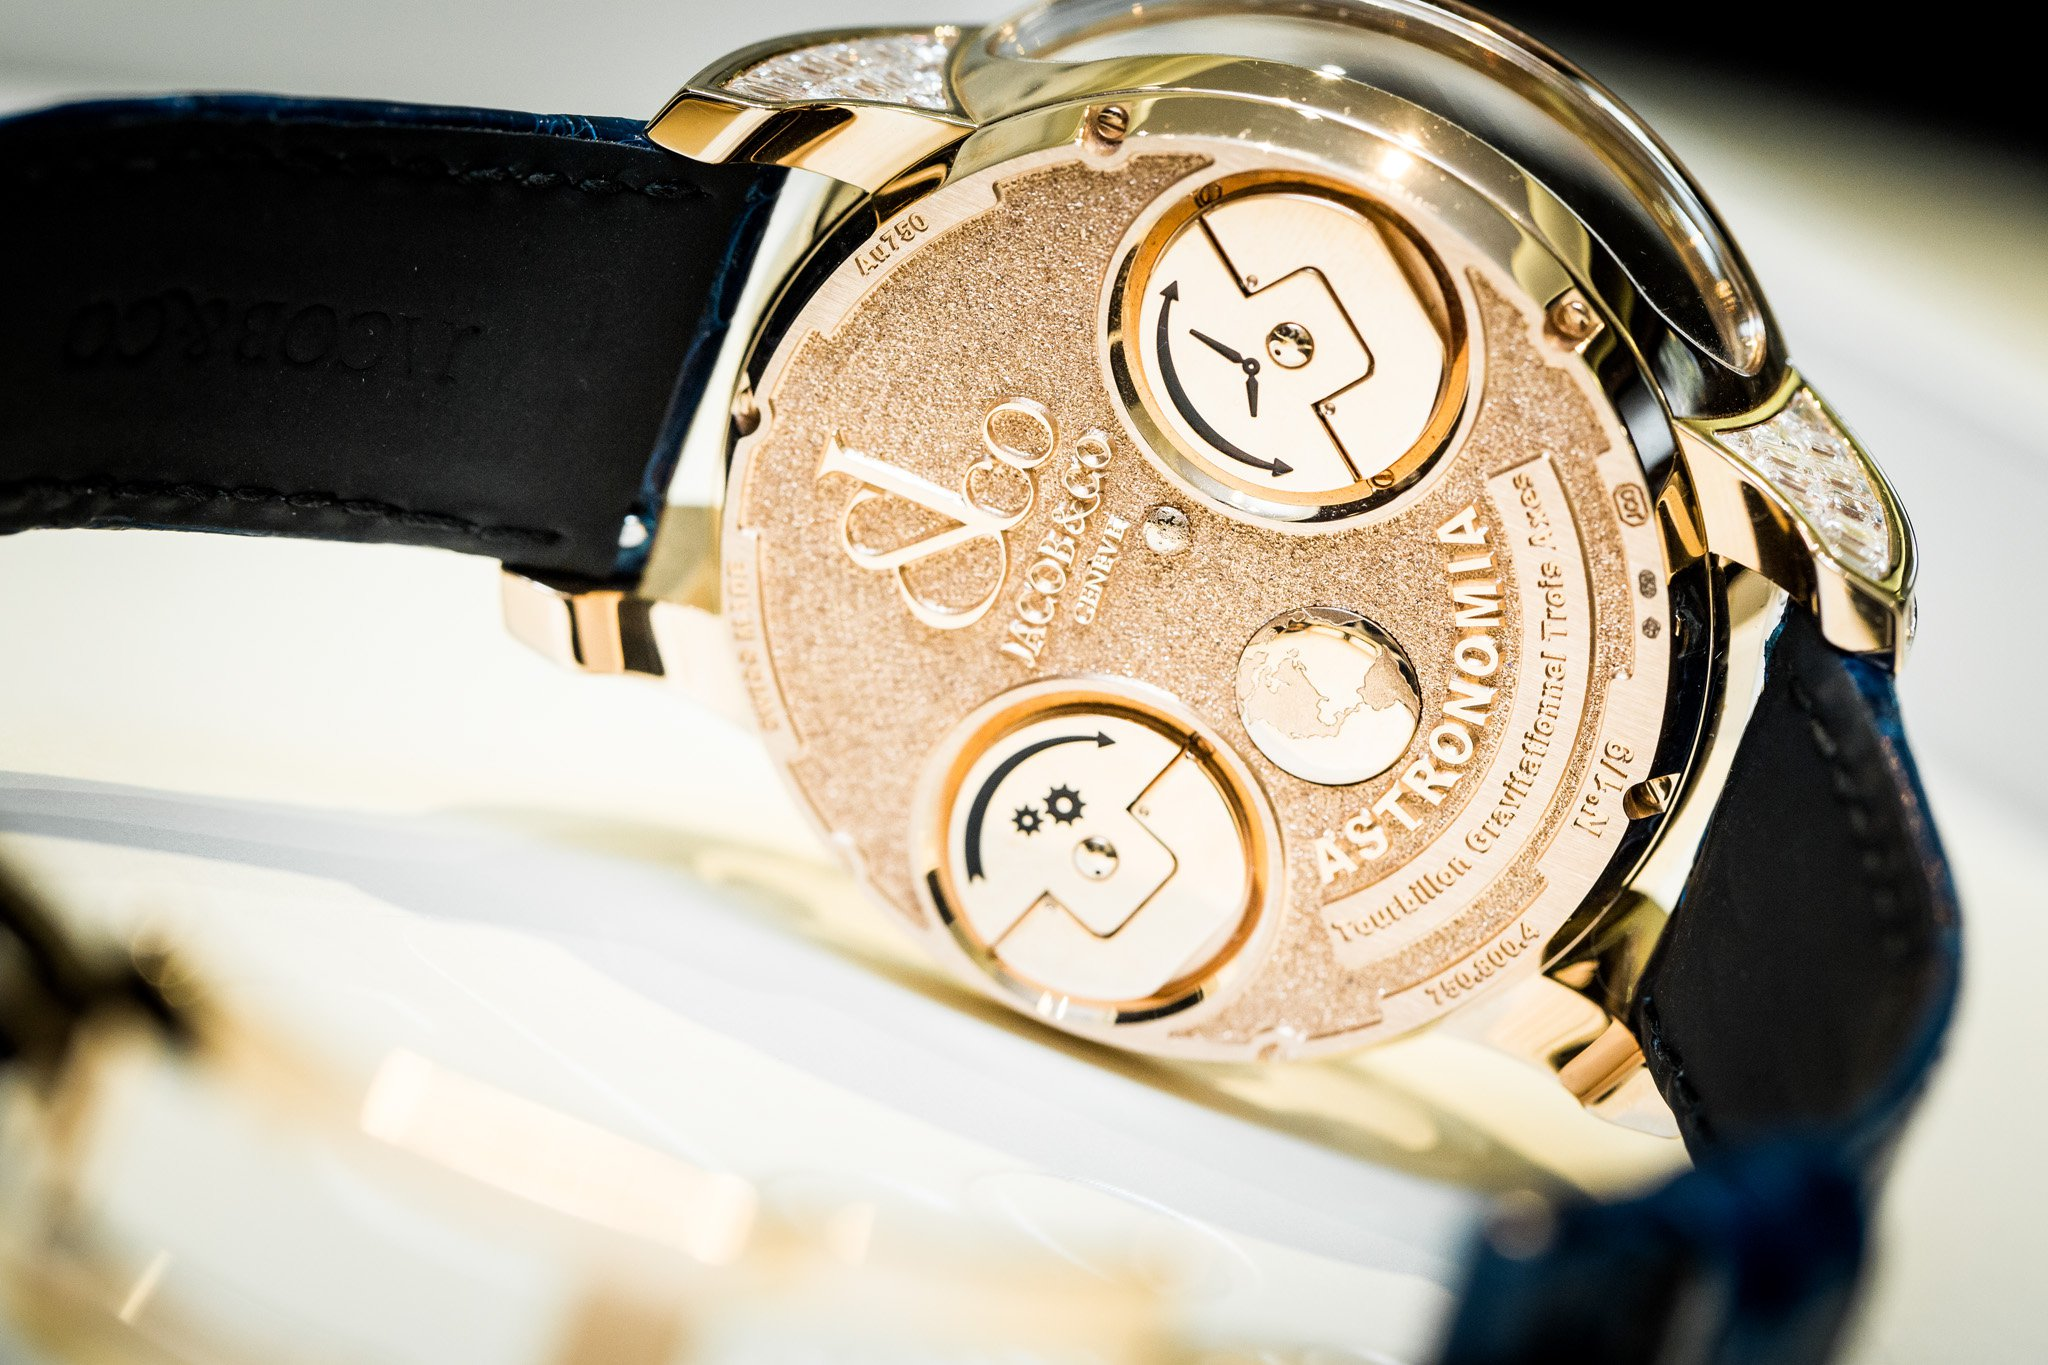 Jacob-Co-Astronomia-Tourbillon-Baguette-Watch-Baselworld-2015-Back